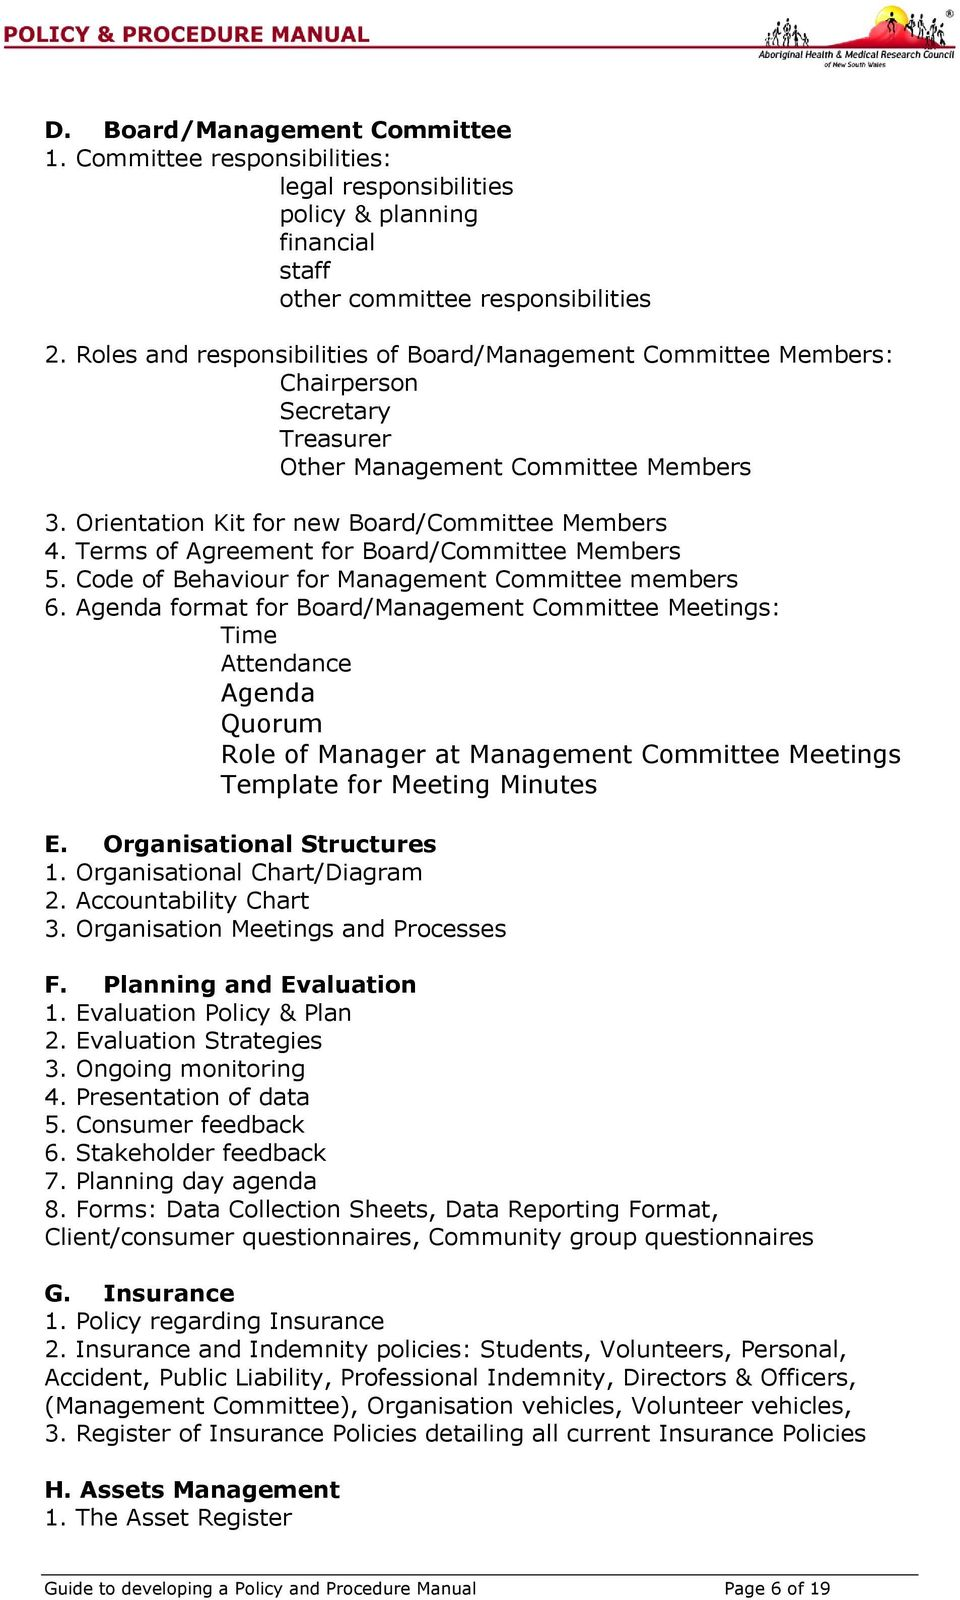 board policy manual template - guide to developing an organisational policy procedures